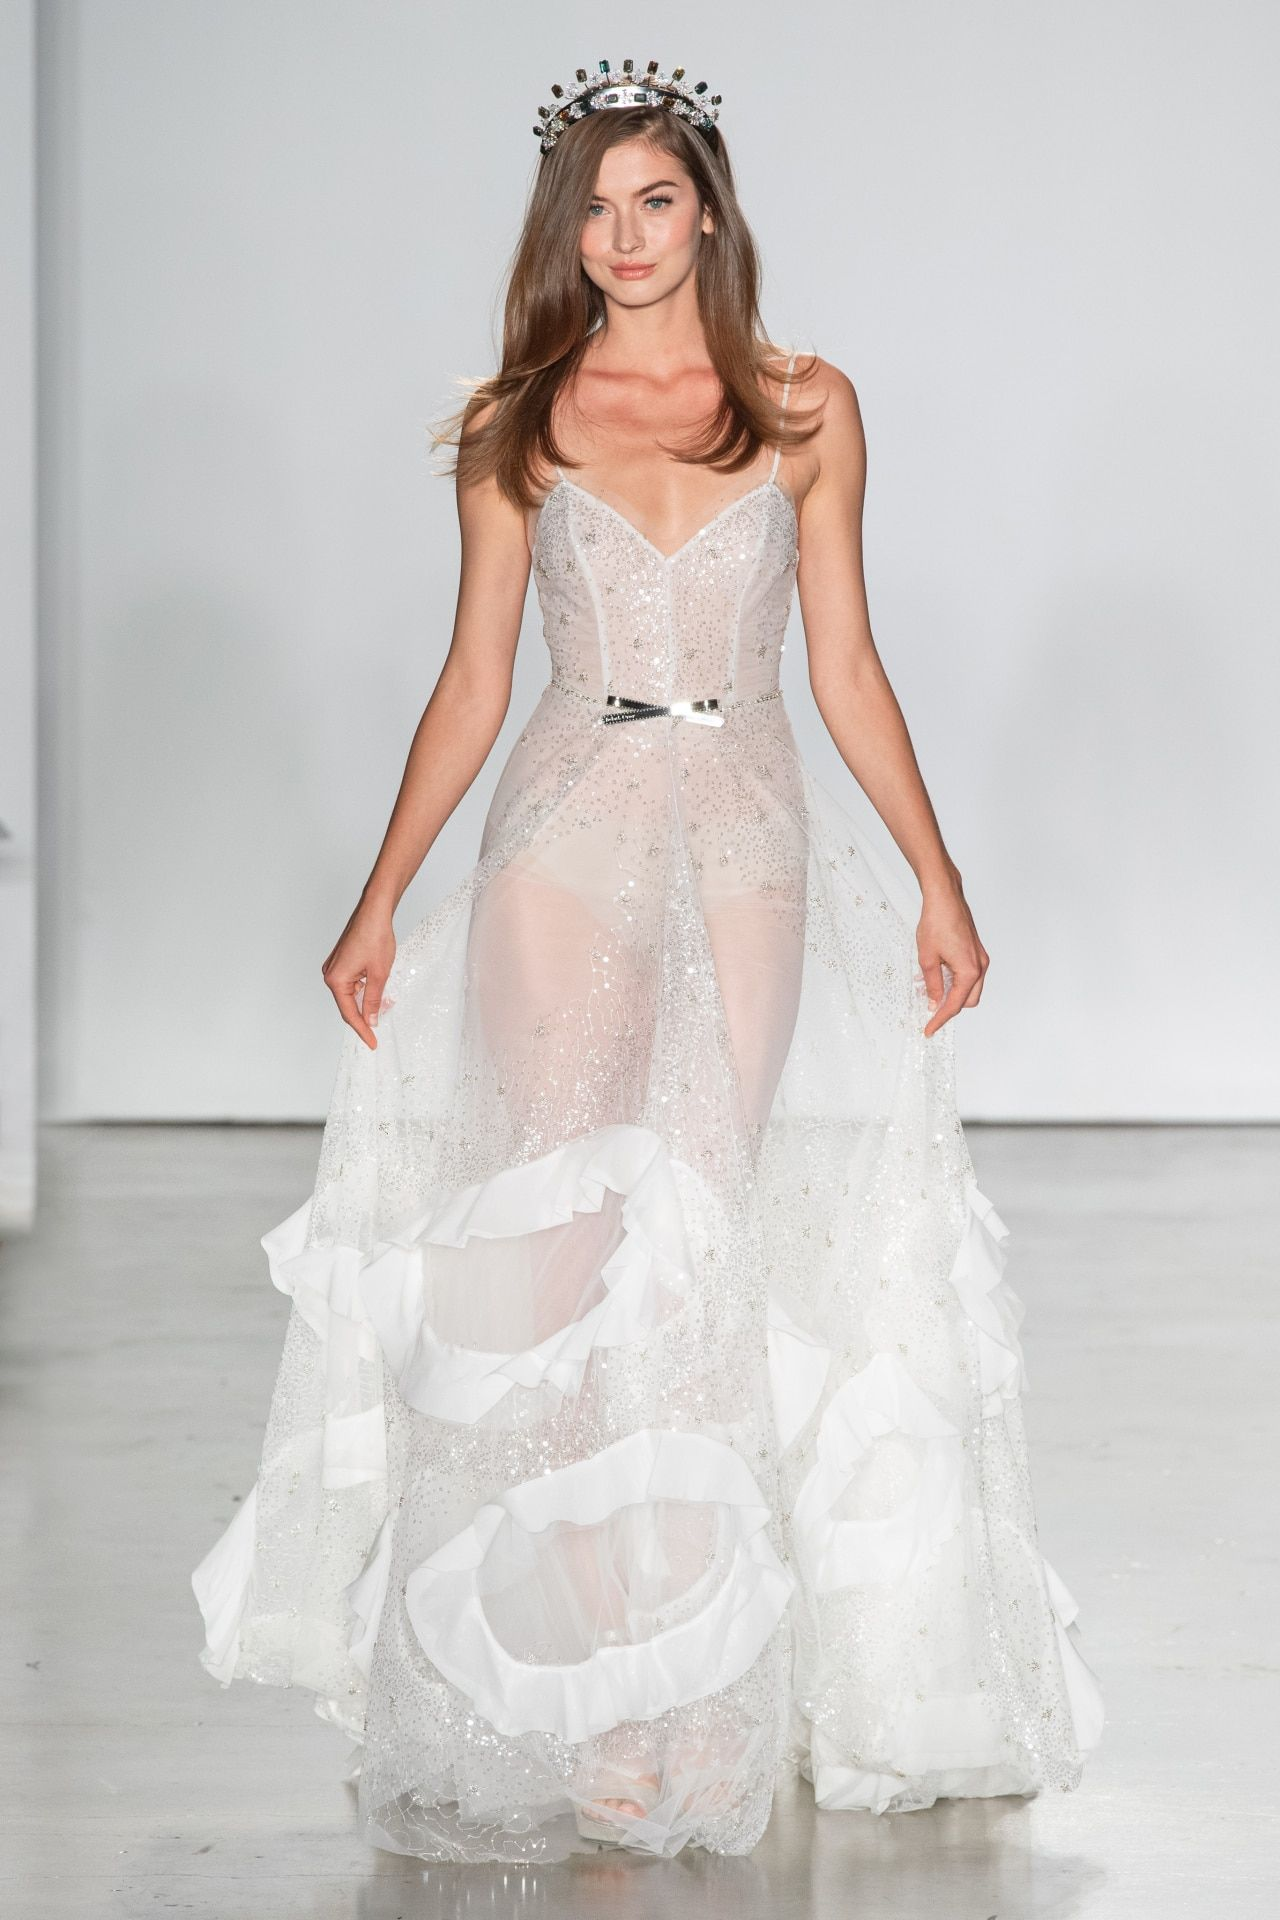 Helen Rodrigues on the top trends from Bridal Fashion Week autumn 2020